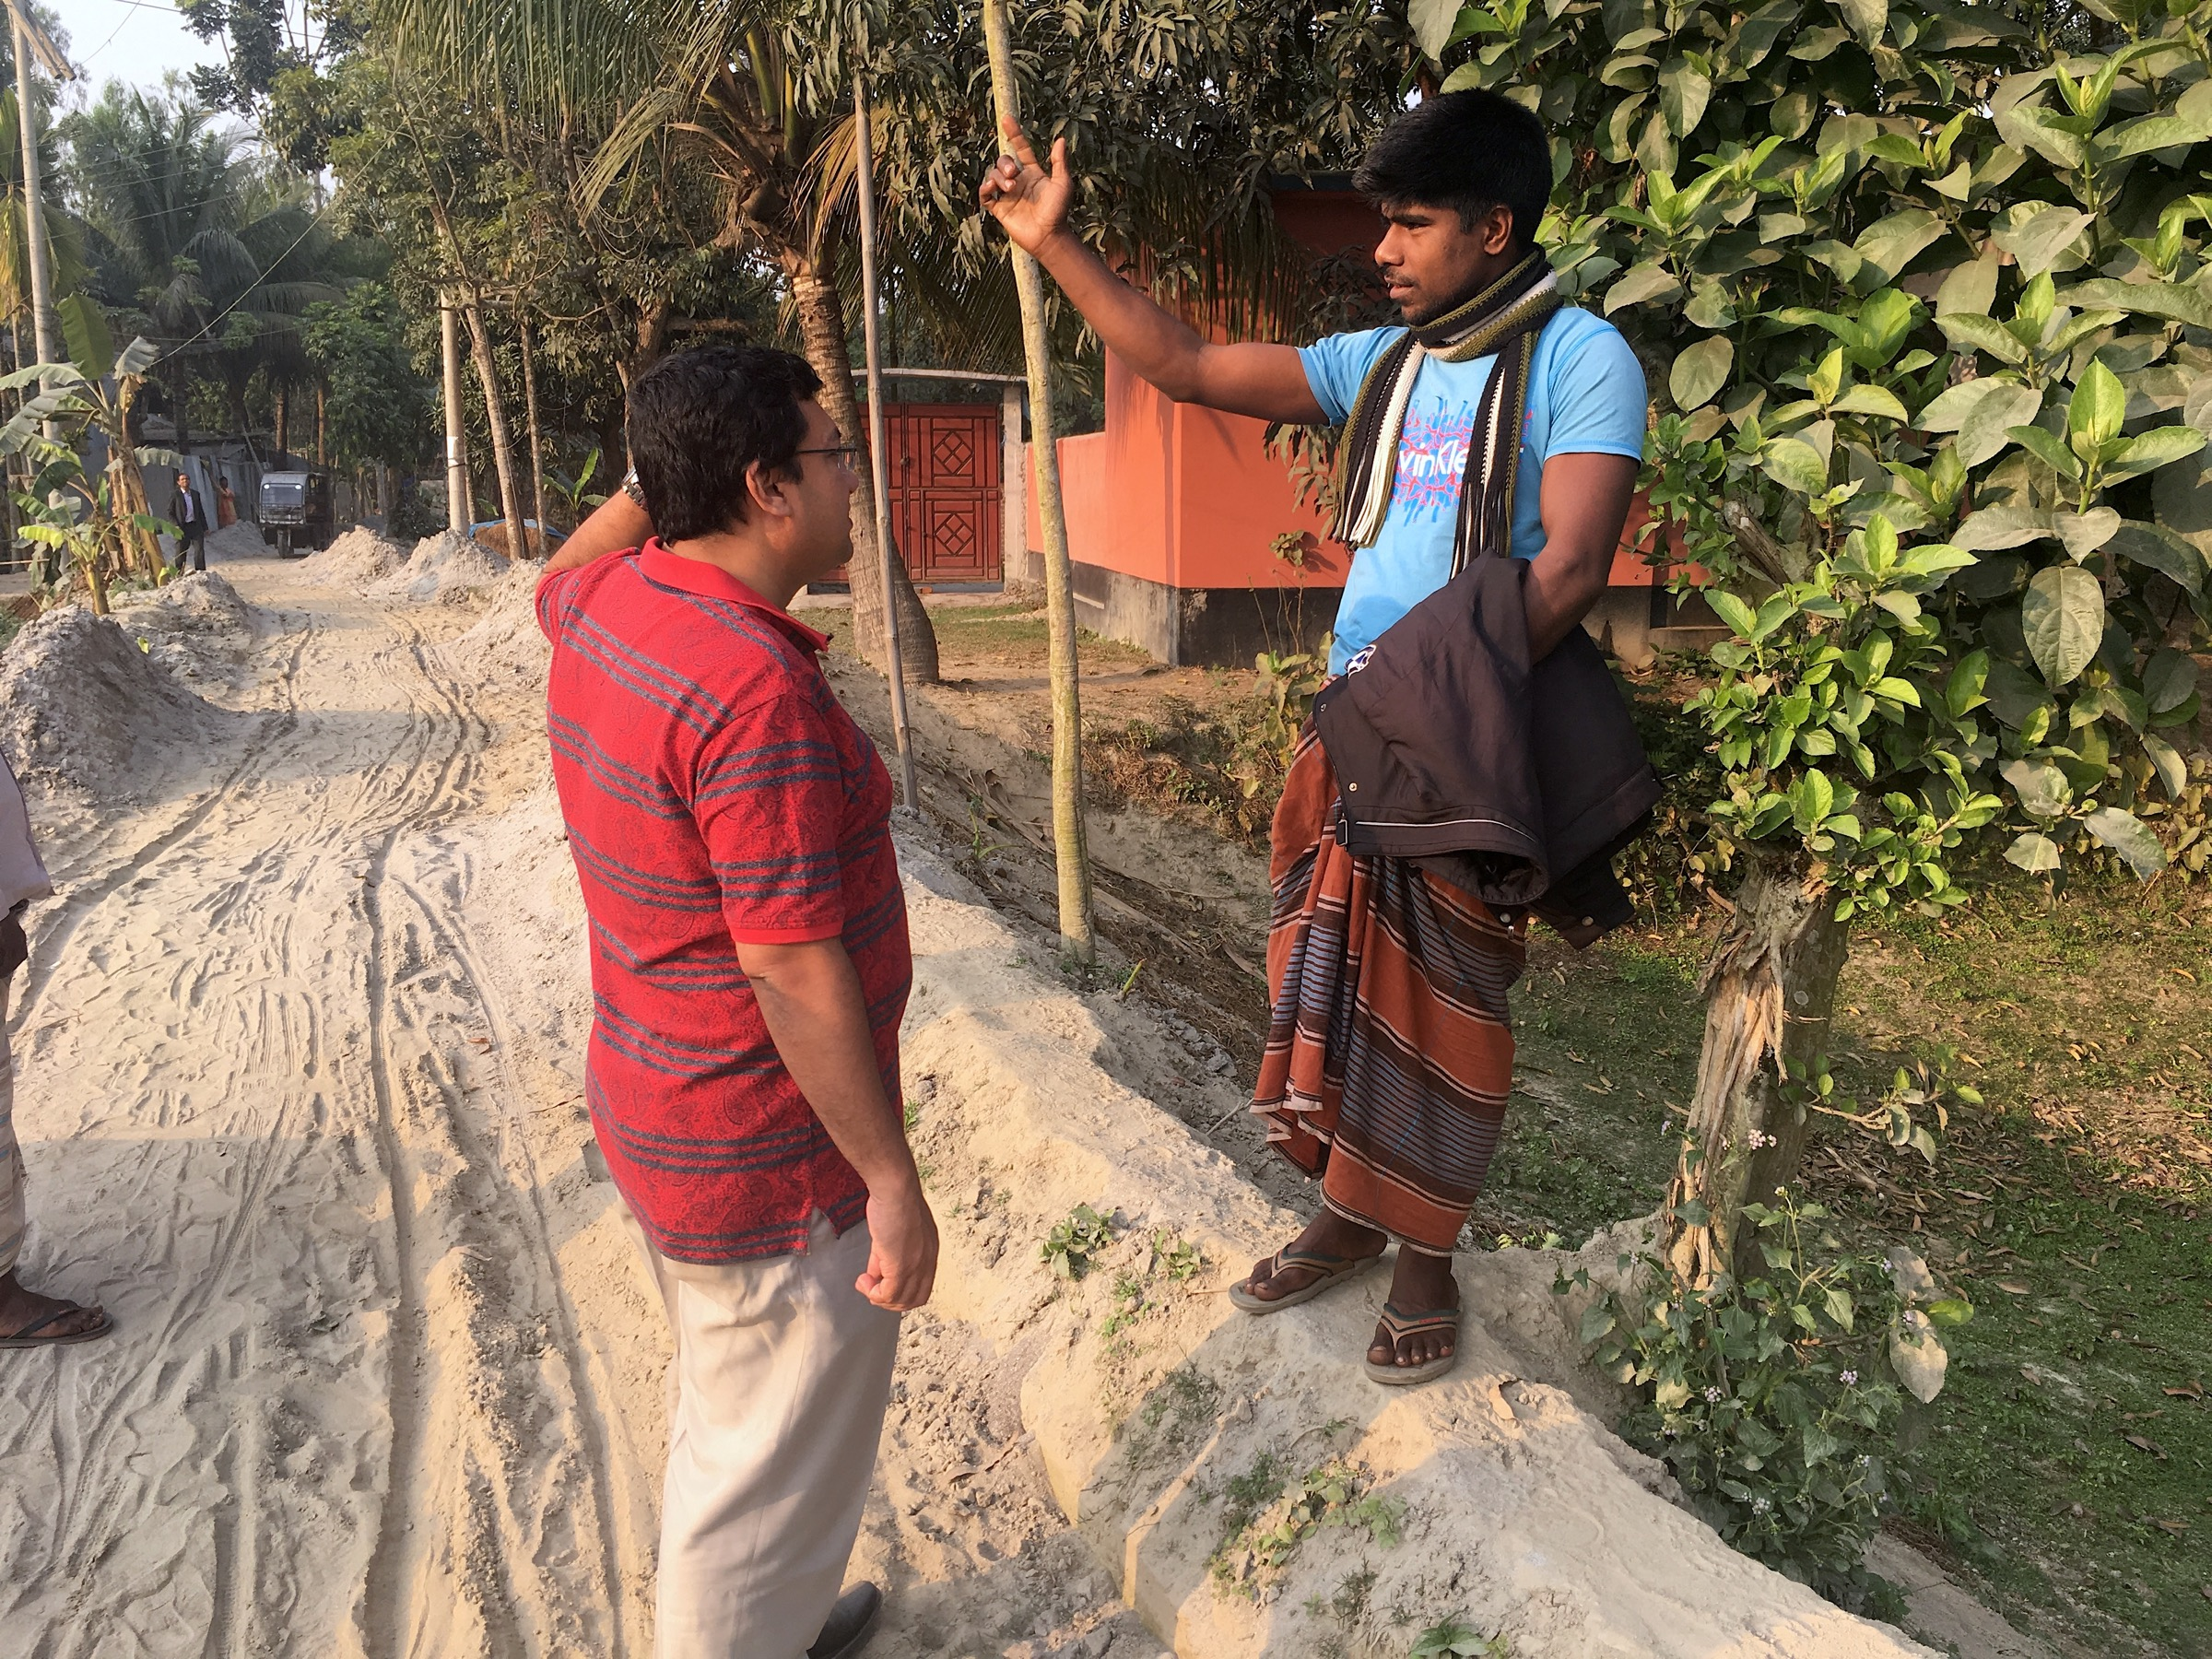 Physician Hossain M. S. Sazzad from ICDDR,B asks a resident of the village of Mohonpur for directions to the home of the local <em>gachhi</em>, a collector and seller of date palm sap. Photograph by Steven Bedard